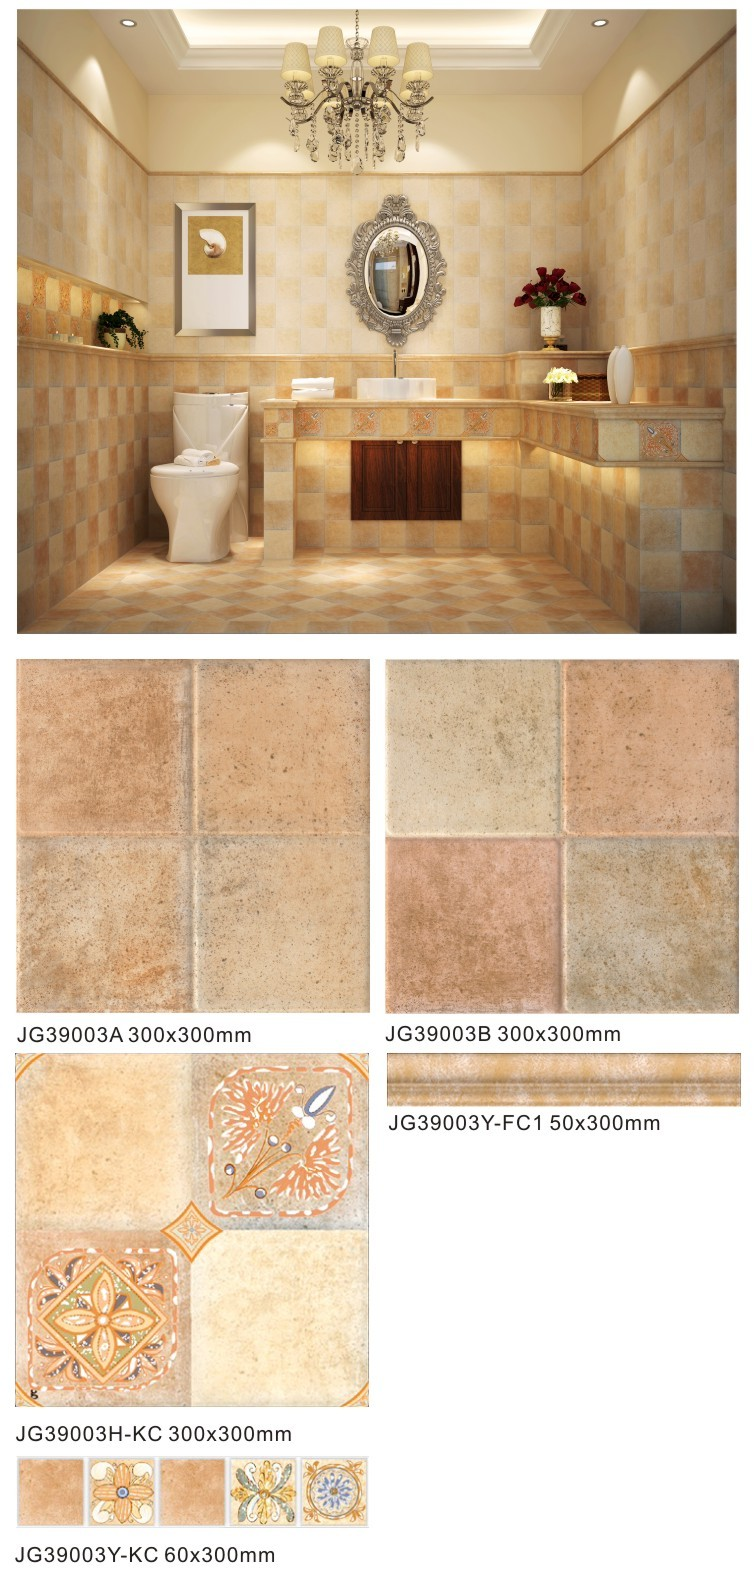 Ceramic Tiles Factory 30x30cm Rustic Bathroom Wall And Floor Tiles Tanzania  - Buy Tiles Tanzania,Tiles Tanzania,Tiles Tanzania Product on Alibaba com